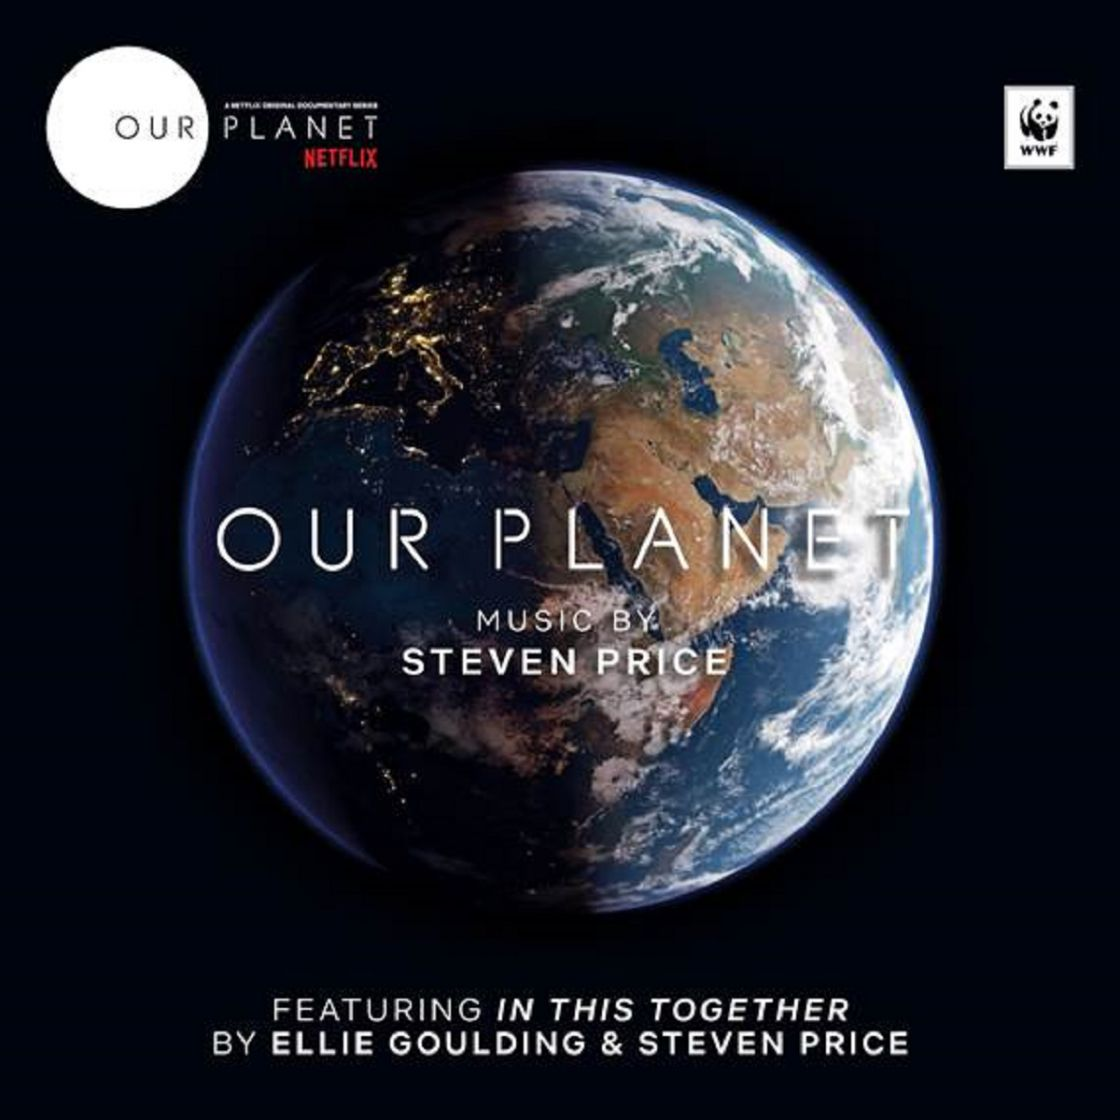 'OUR PLANET'